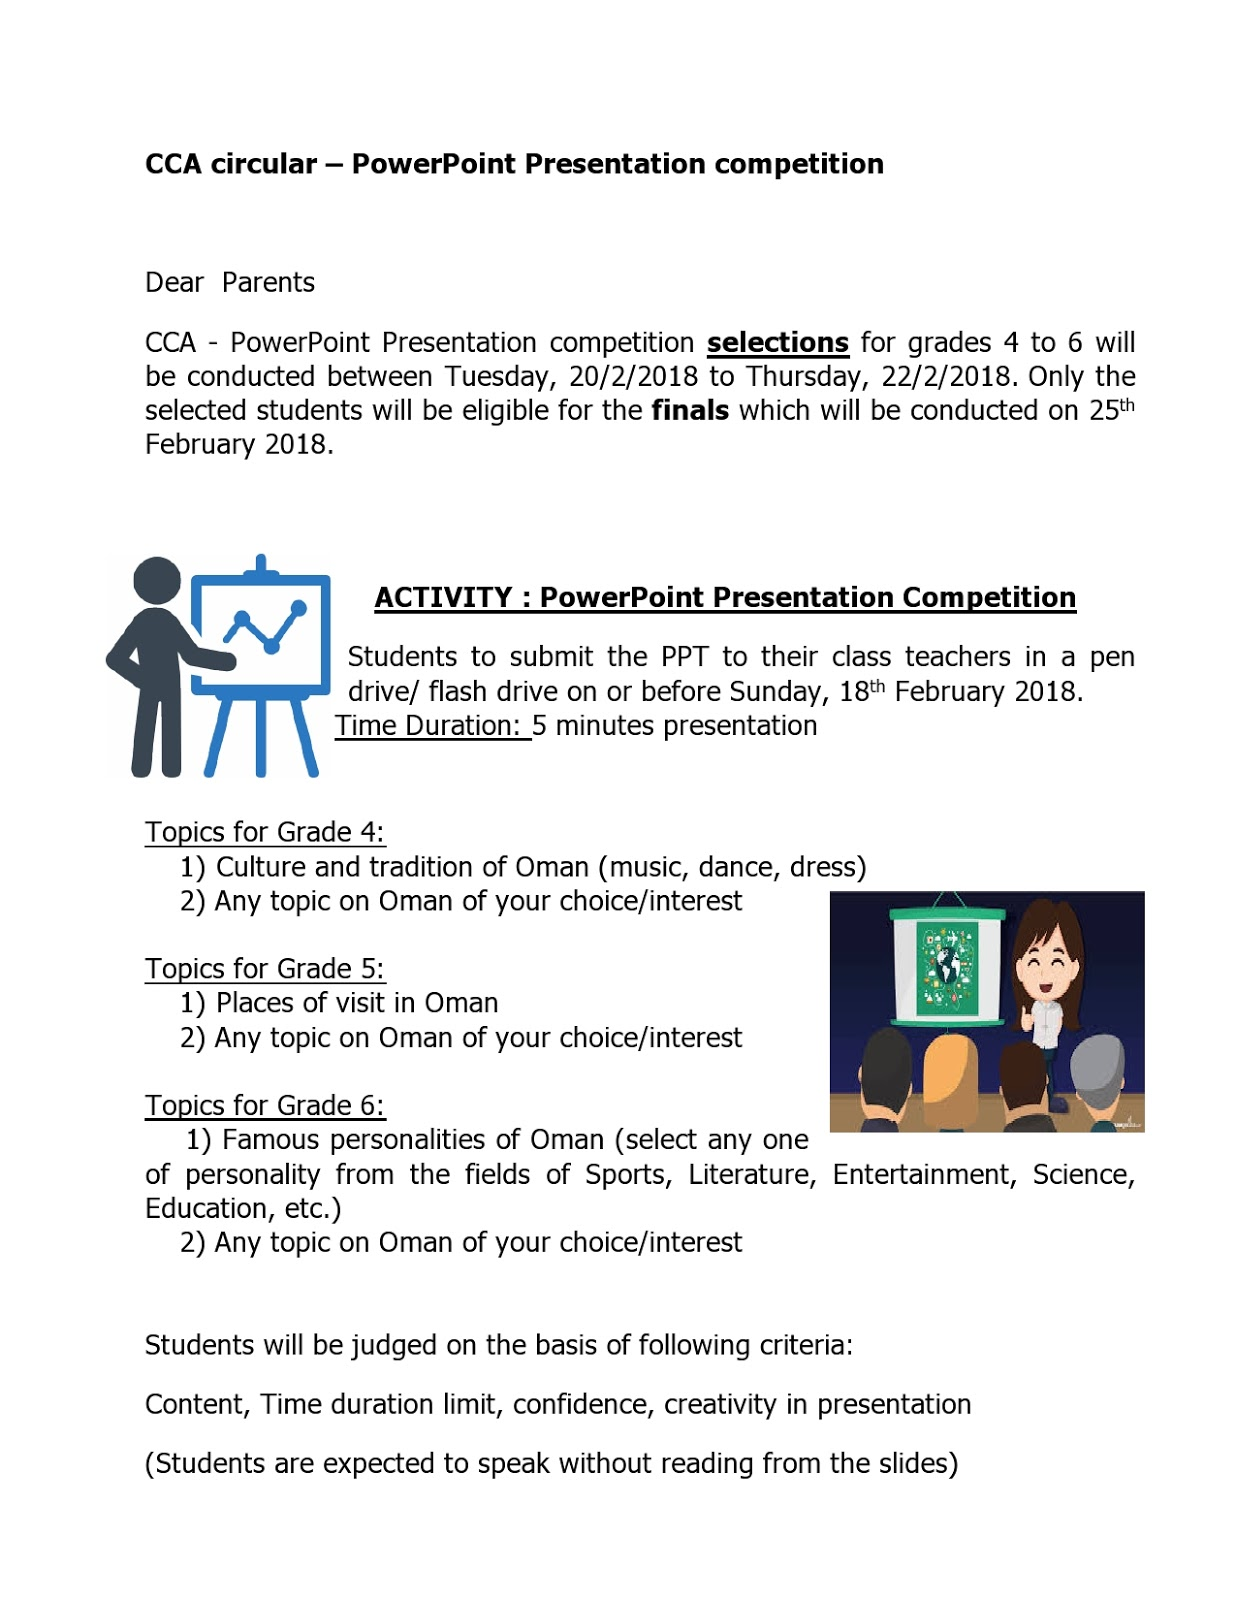 Reminder CCA Circular - PowerPoint Presentation Competition